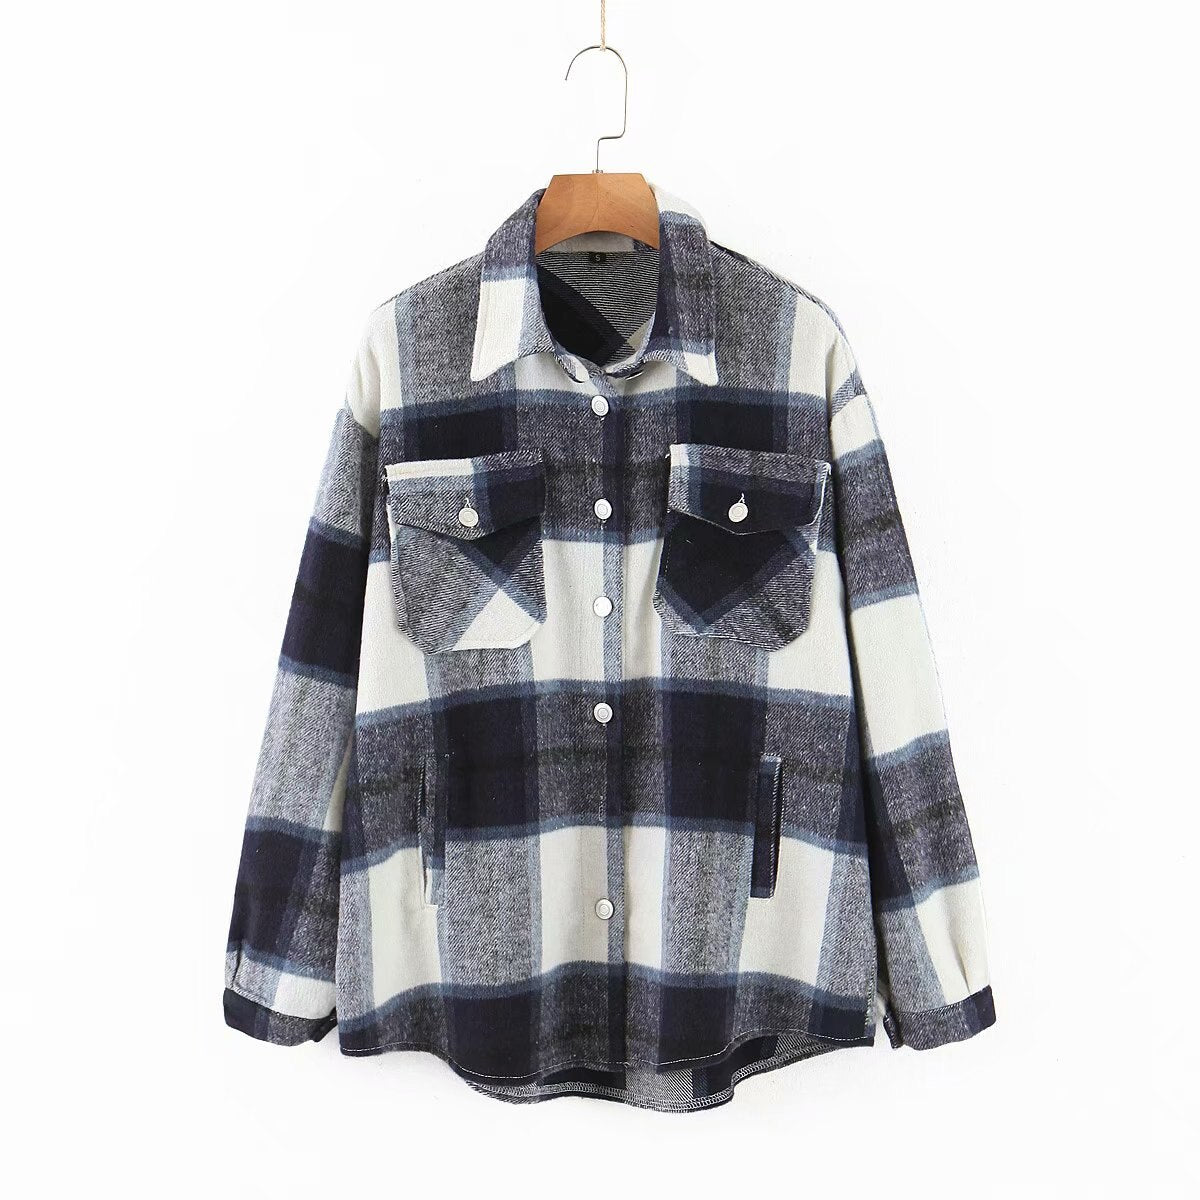 toppies vintage lattice shirt jackets womens loose single breasted coat spring plus size jackets